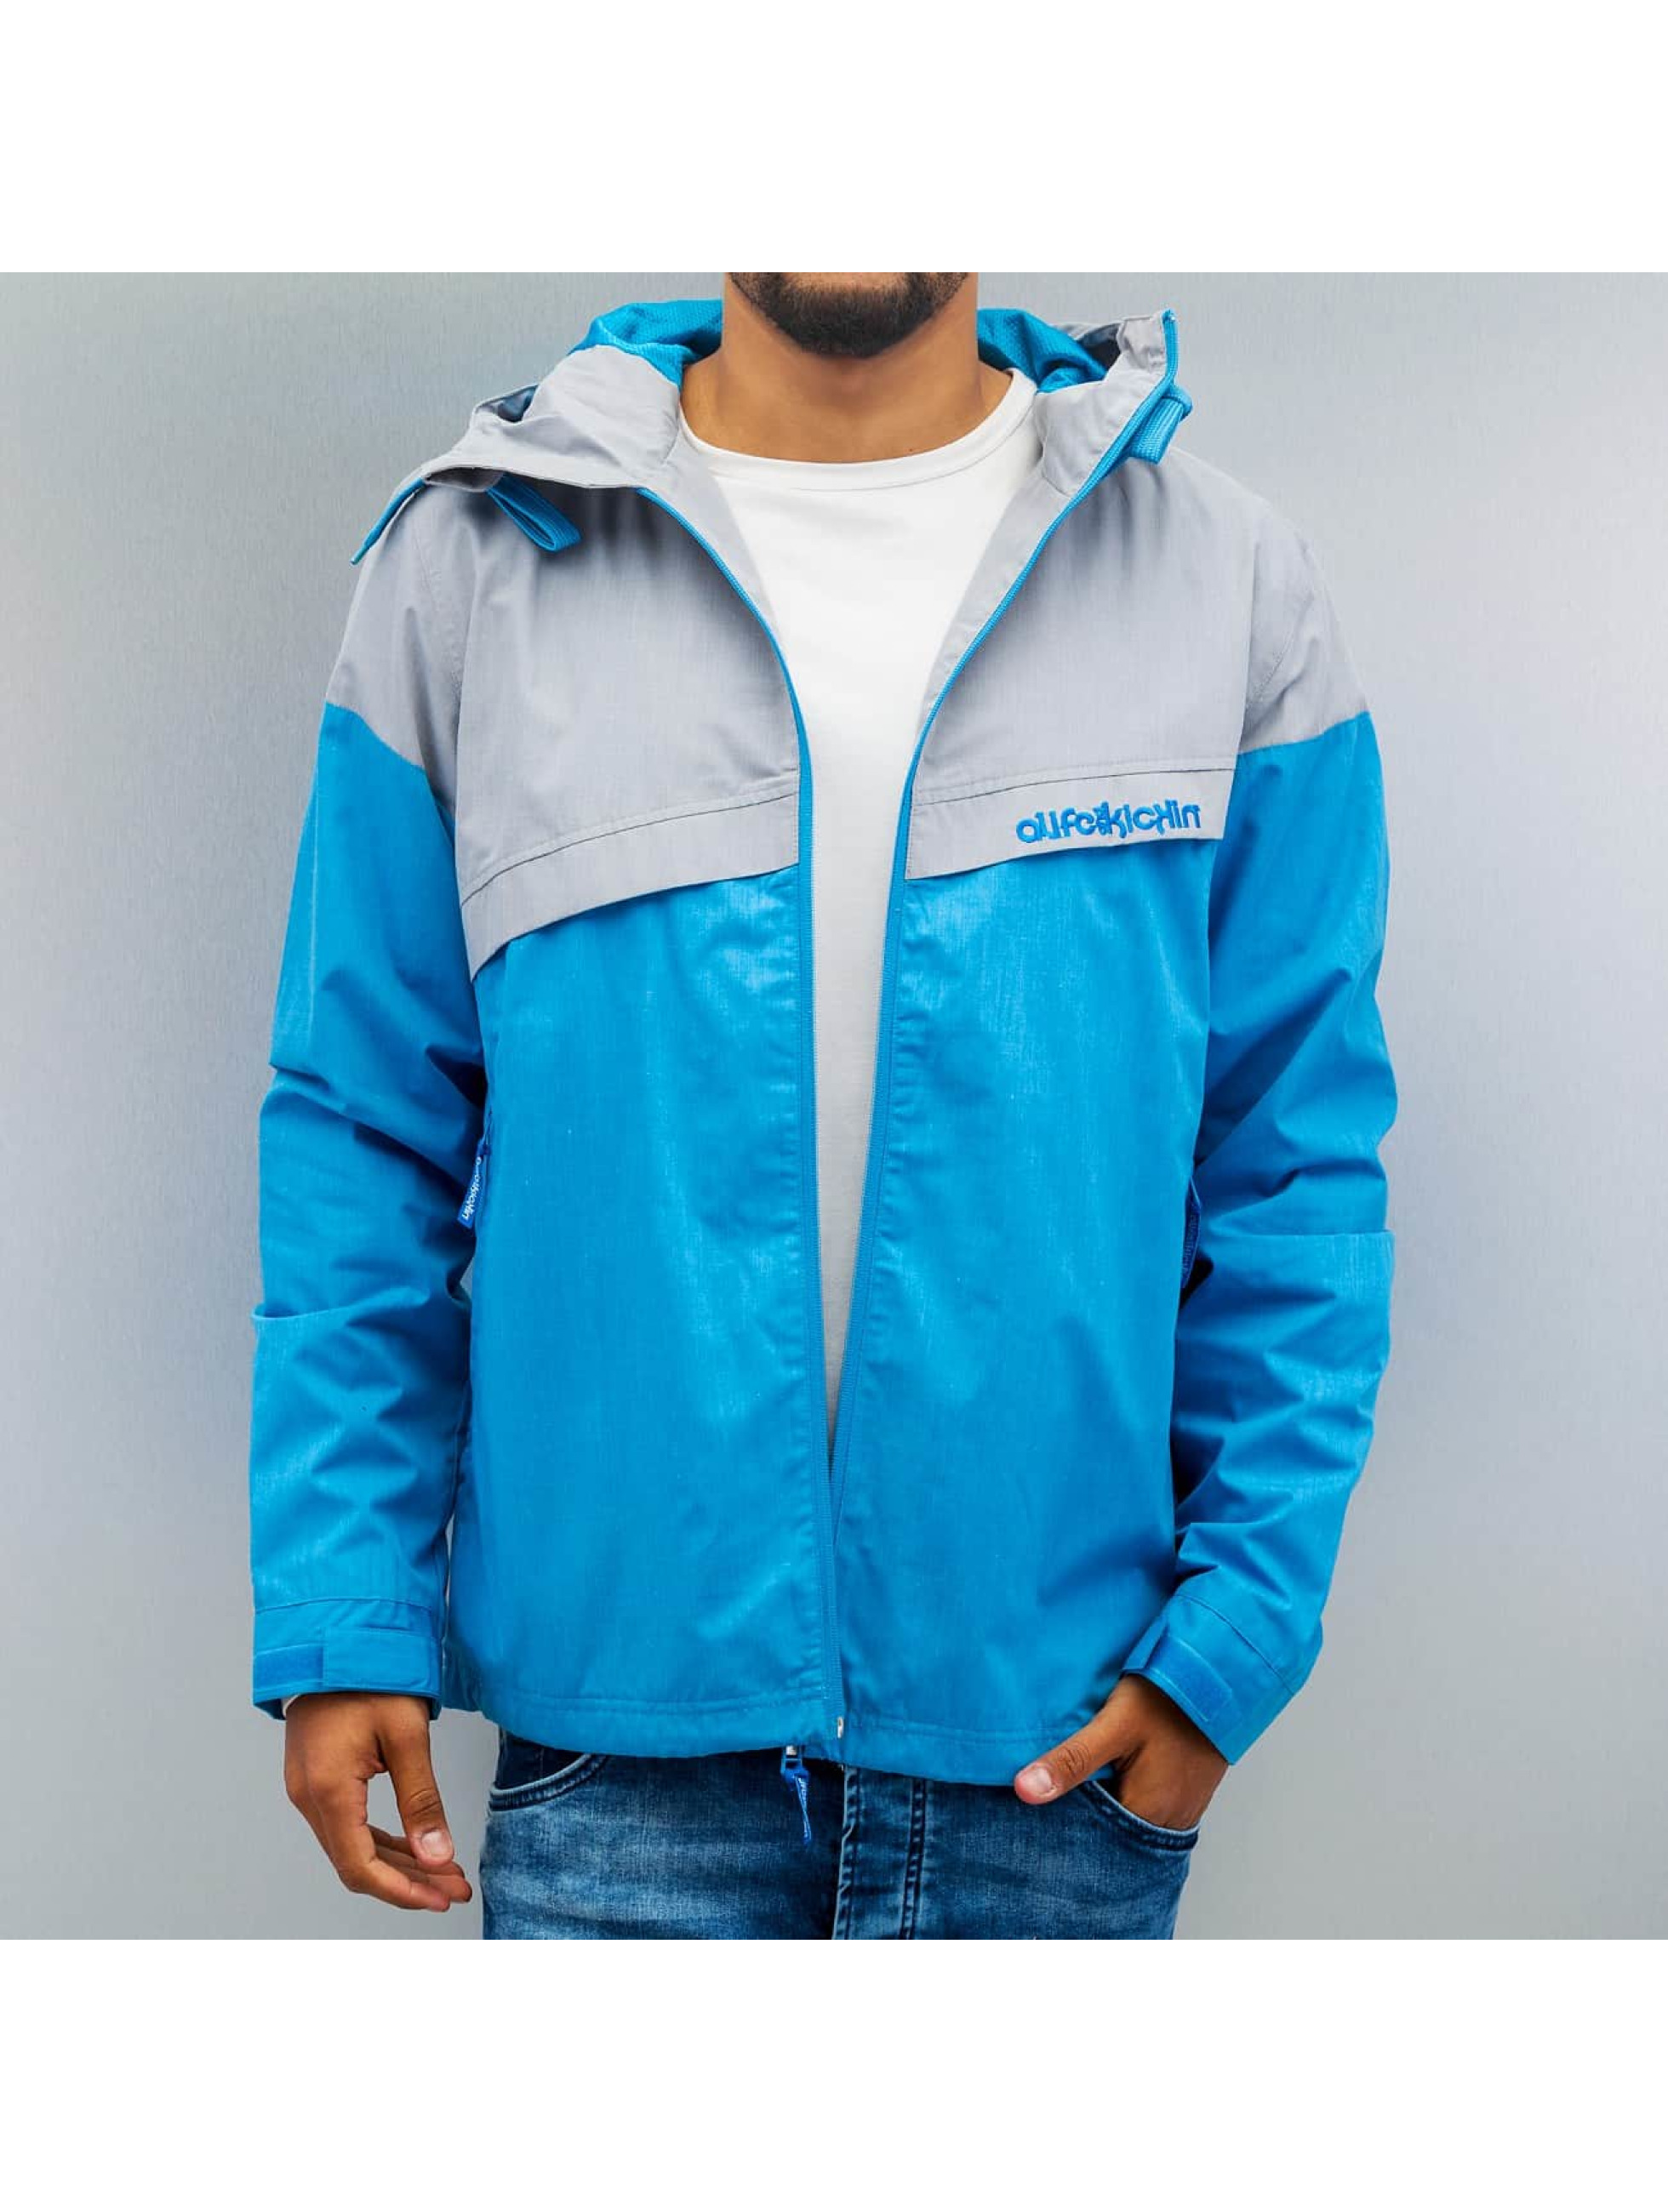 Alife Kickin Jack Jacket Blue Grey